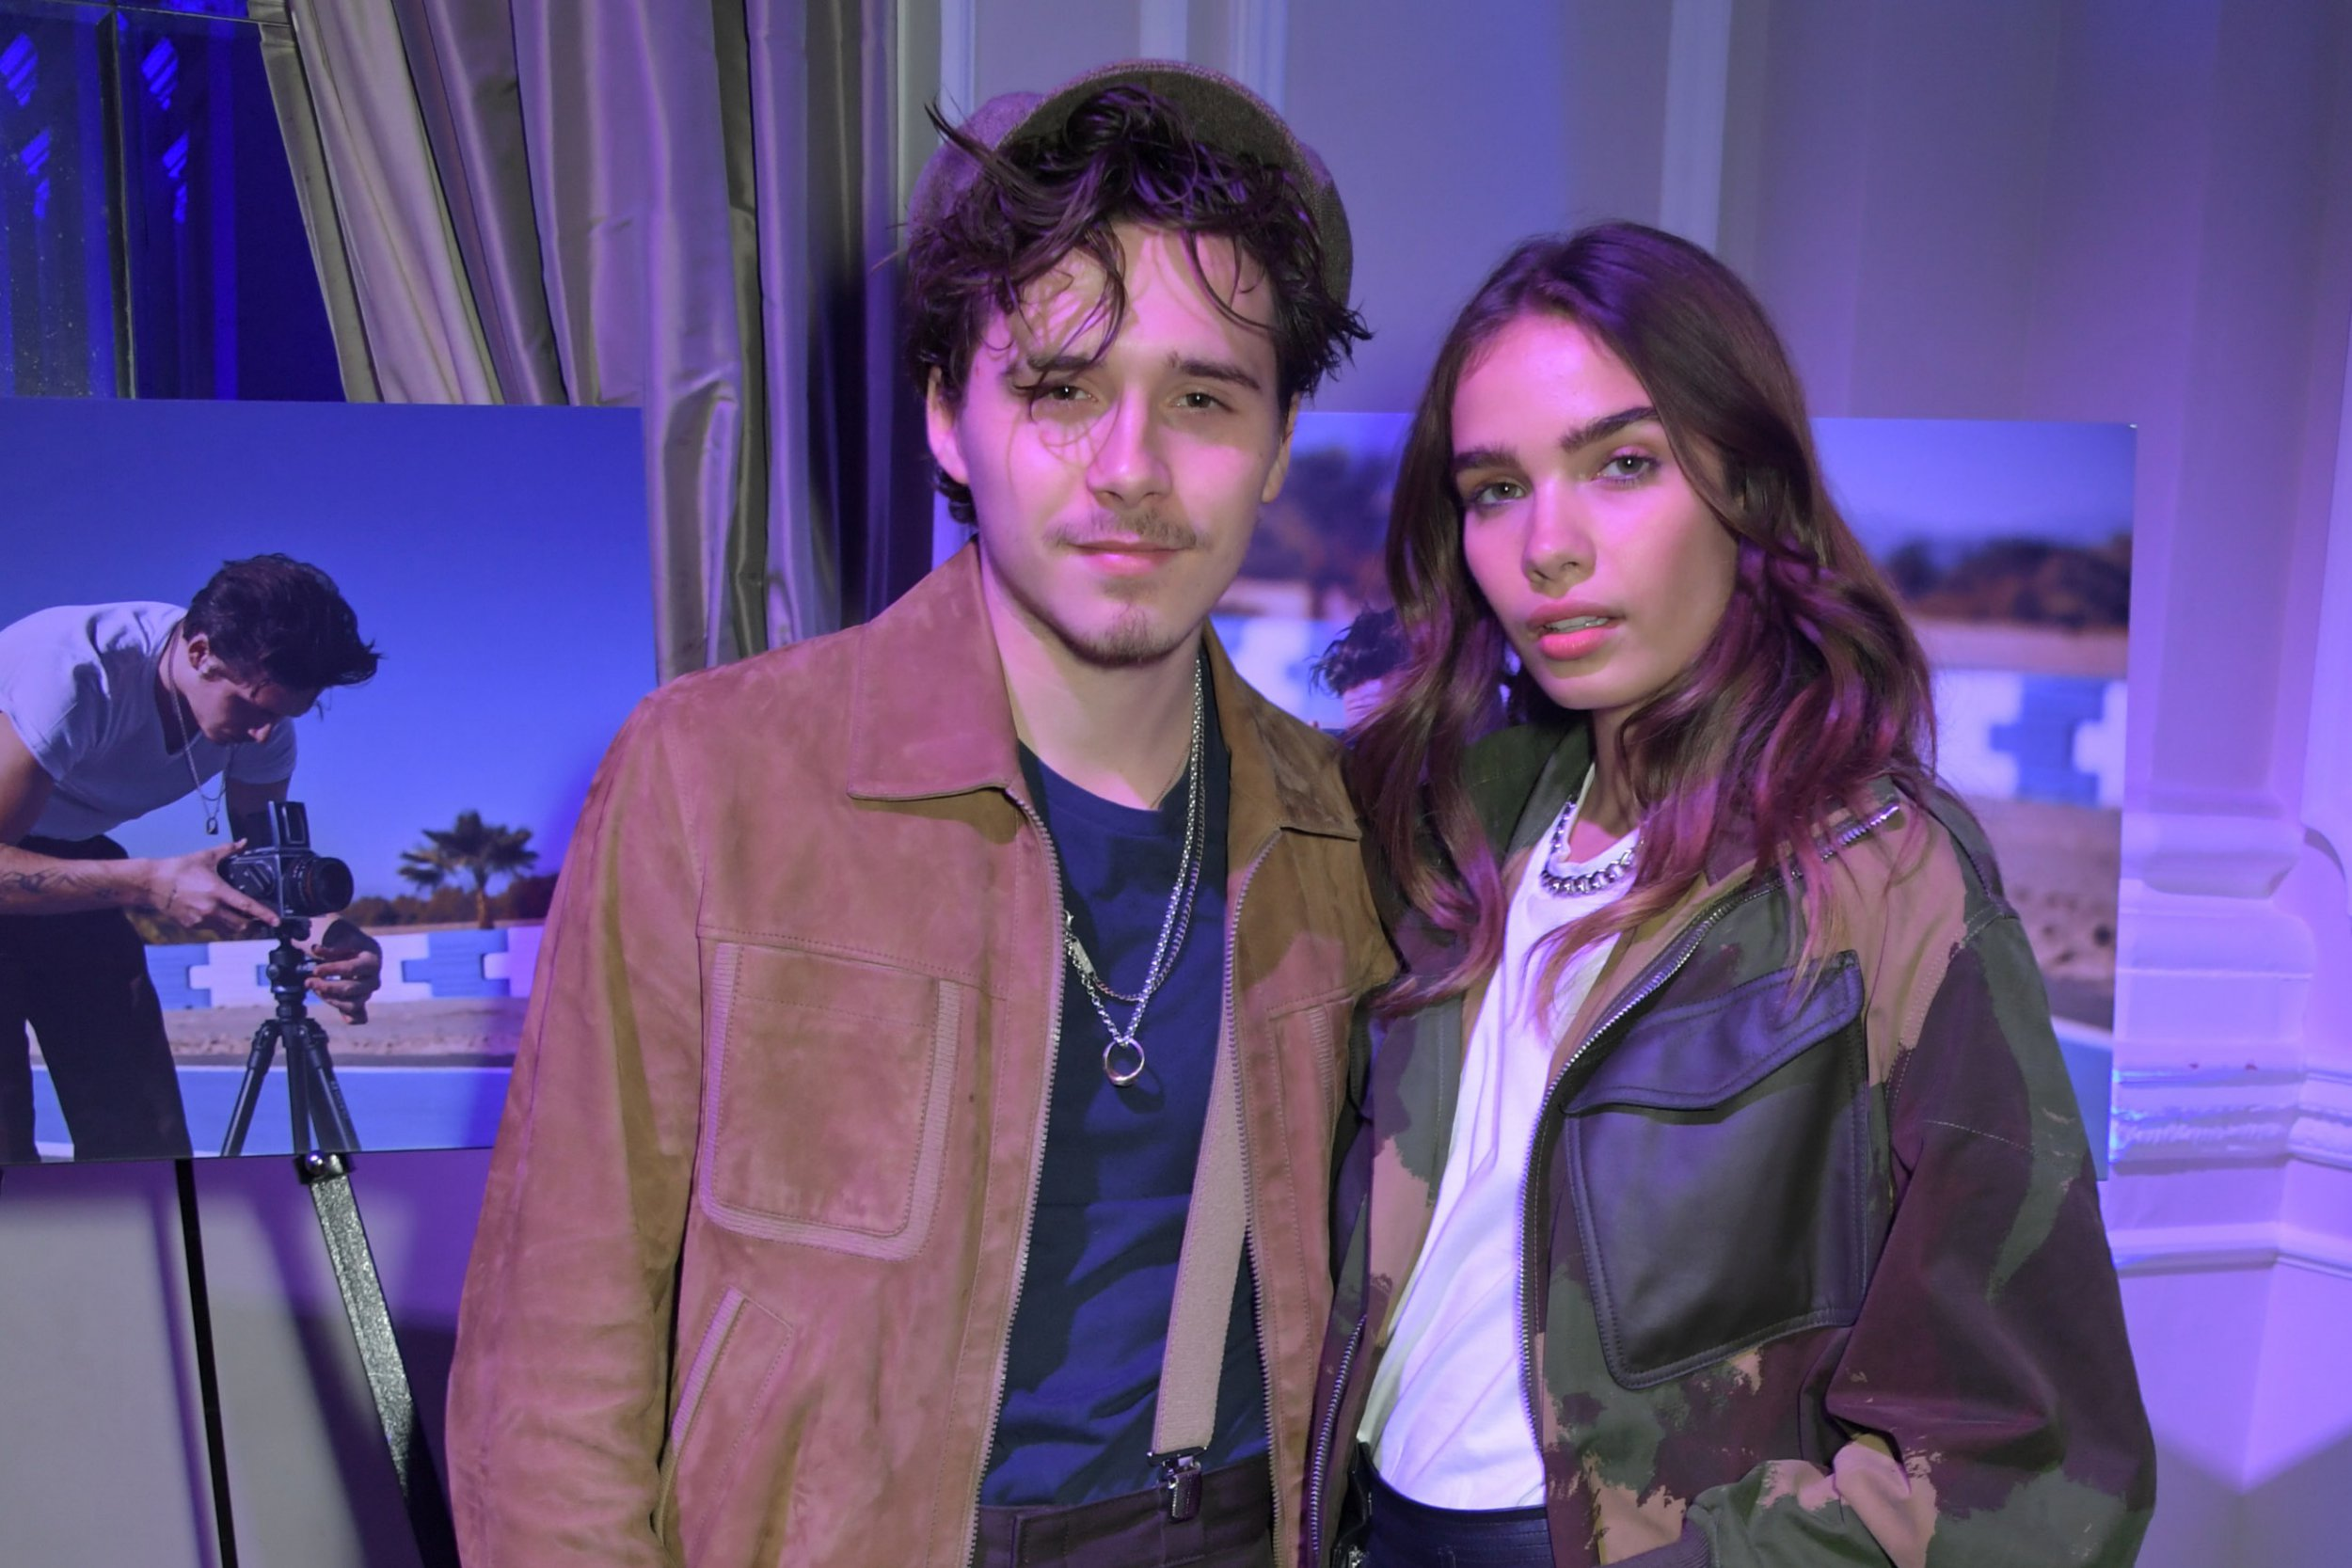 Brooklyn Beckham and girlfriend Hana Cross 'fall out over him drinking too much'